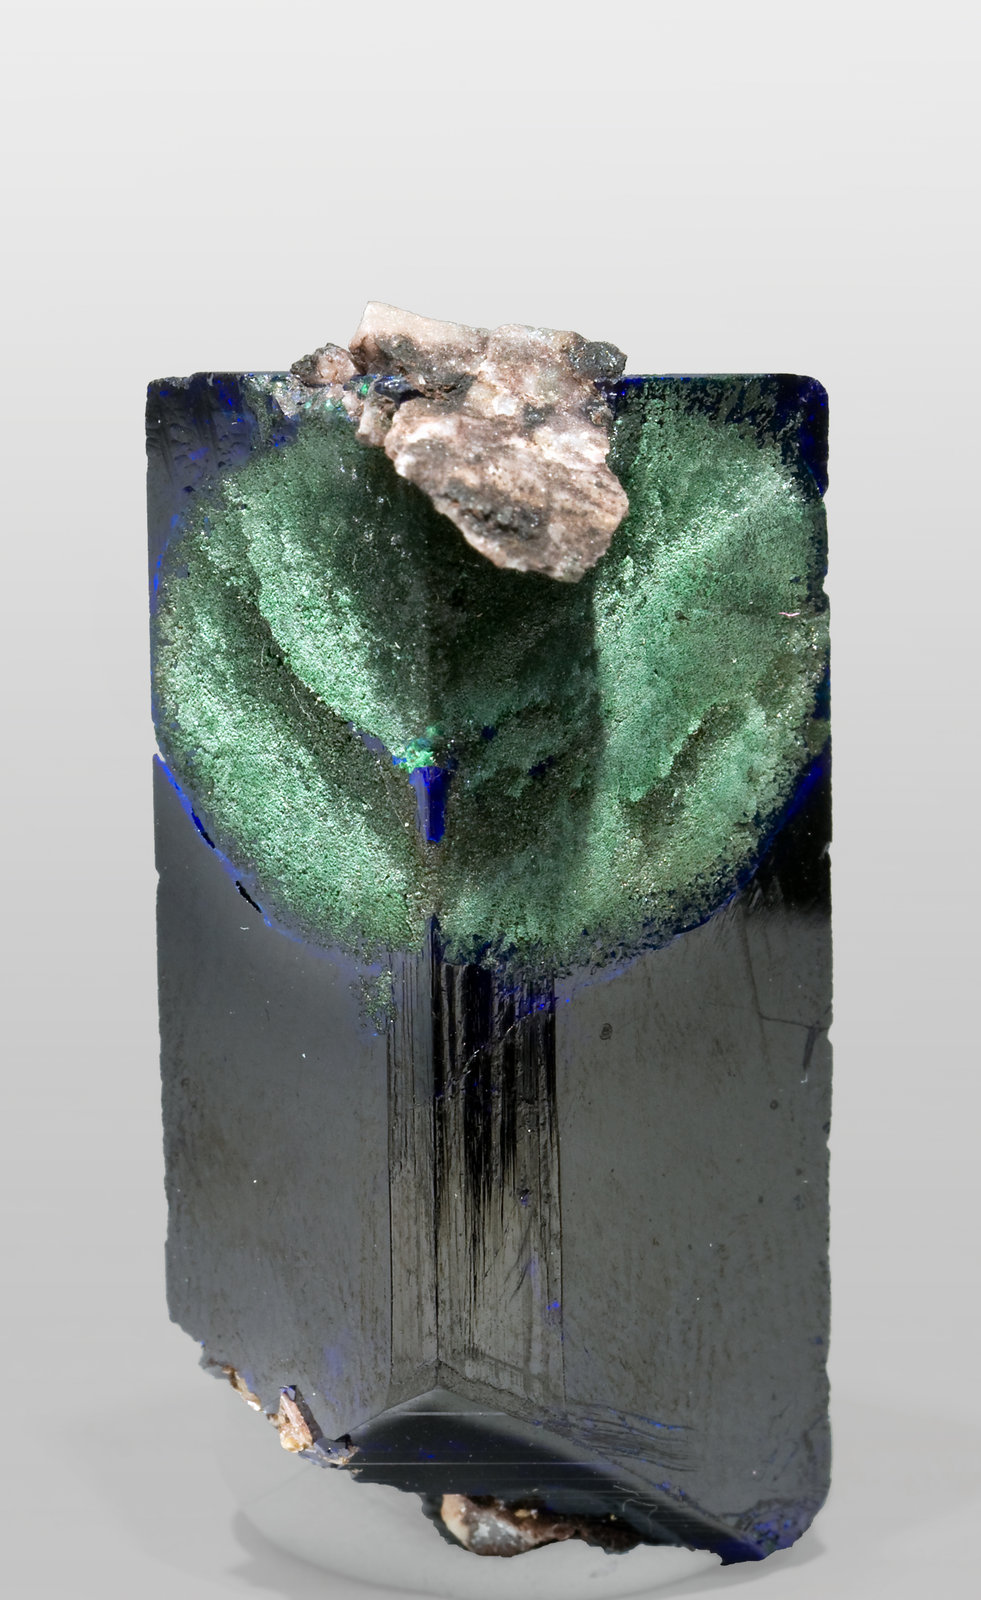 specimens/s_imagesR8/Azurite-MG68R8f.jpg